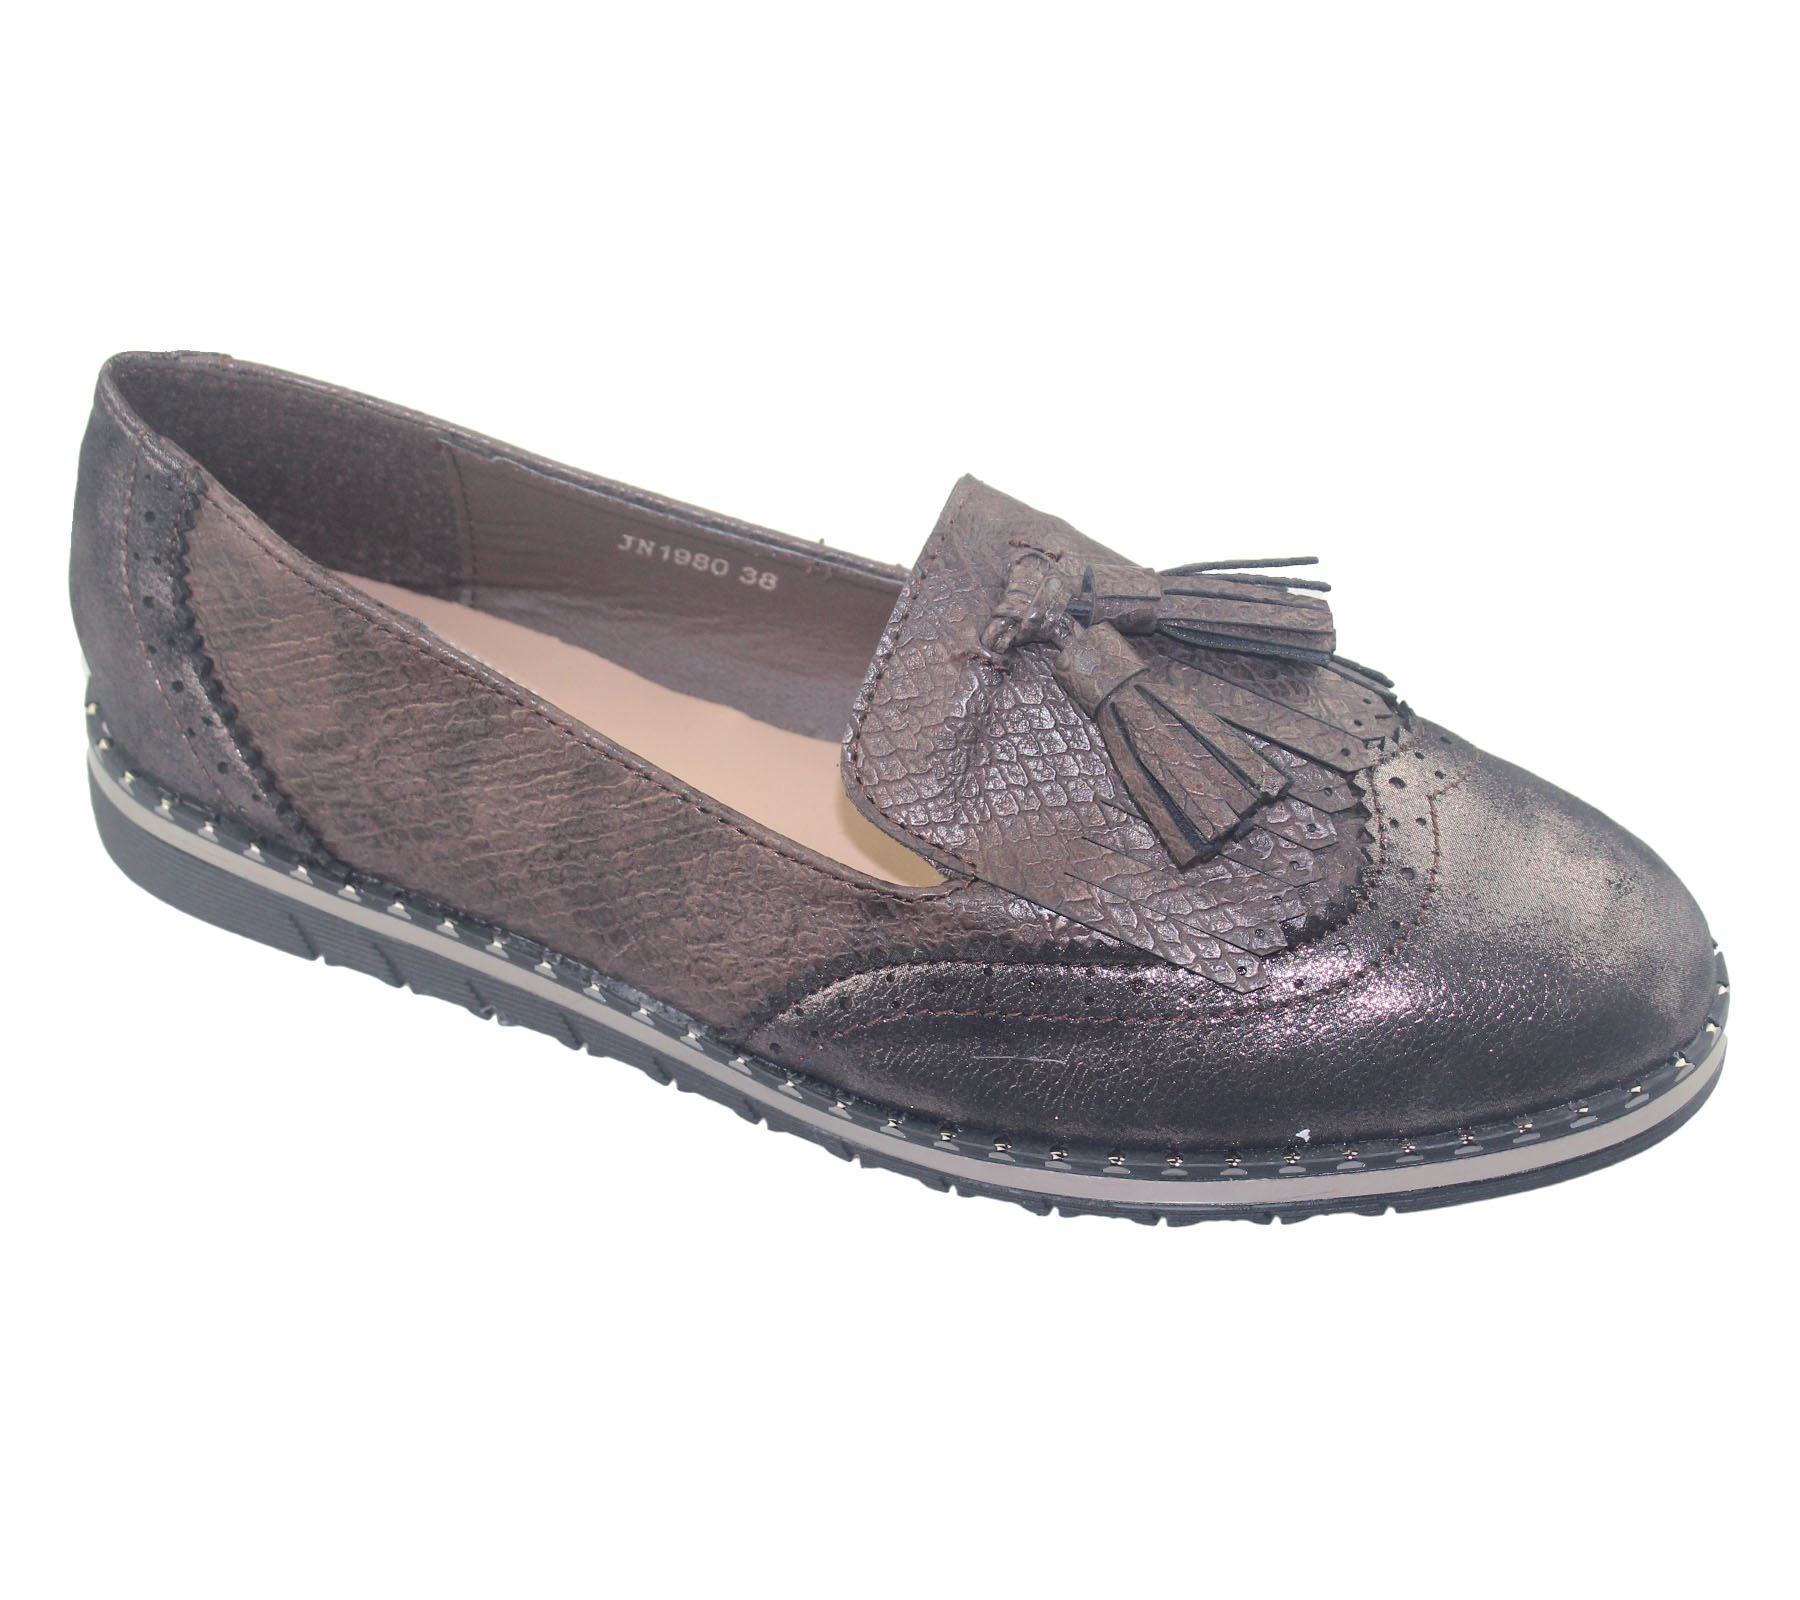 Women-Brogue-Shoes-Ladies-Tassel-Oxford-Office-Snack-Pattent-Loafers-Pumps thumbnail 15